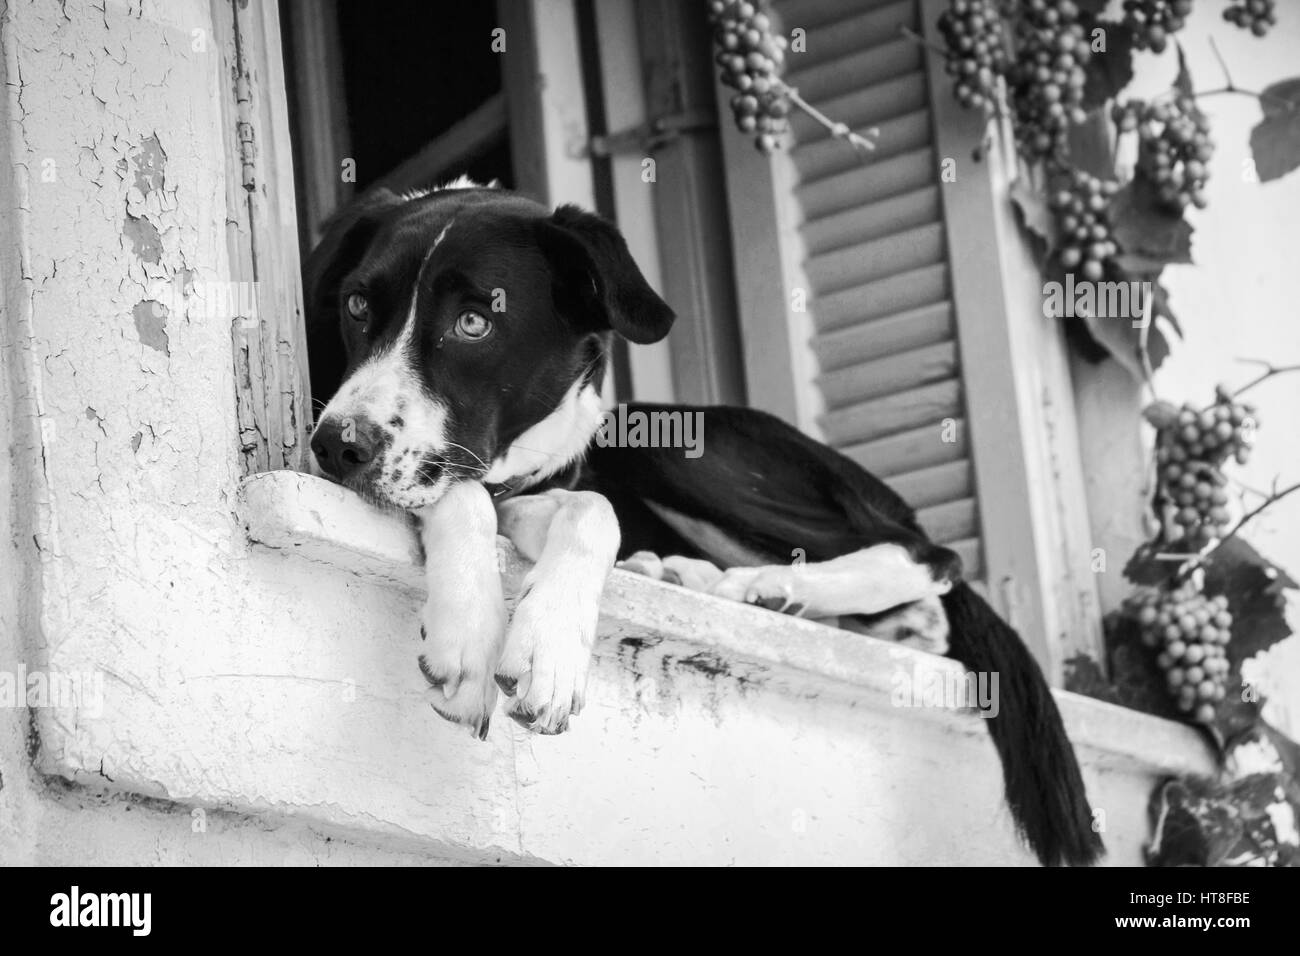 Black and white photo of a dog in the window in rhe old city - Stock Image